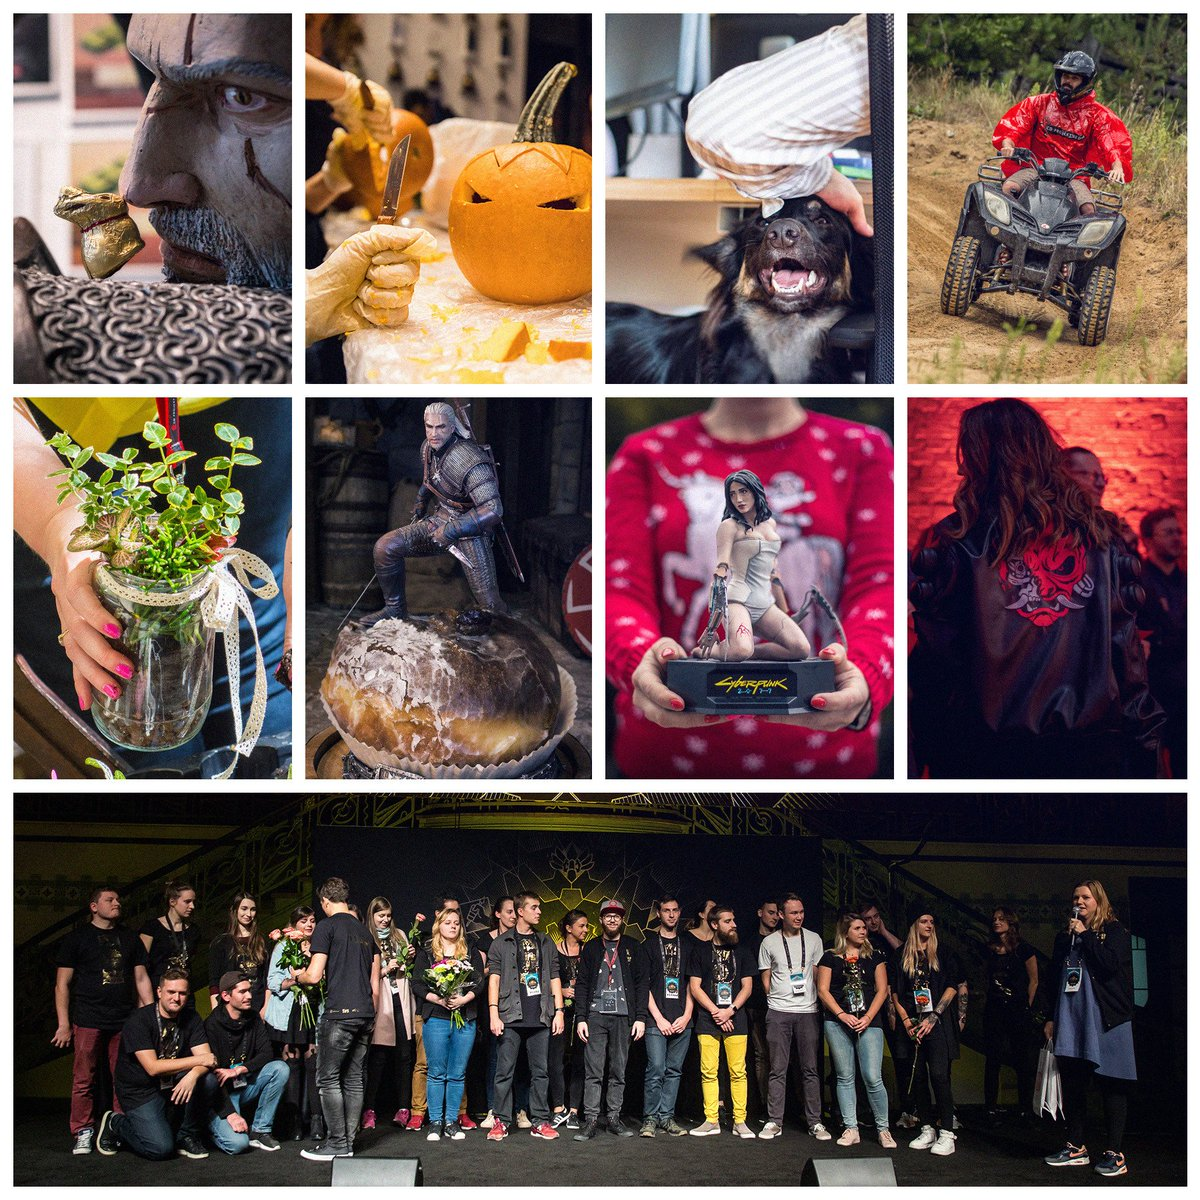 Looking back at last year, a lot is happening #insideRED! It's a shame we could only pick 9 photographs for #2018bestnine, but we already can't wait to see what 2019 has in store for us! pic.twitter.com/m1tbyZ1akJ